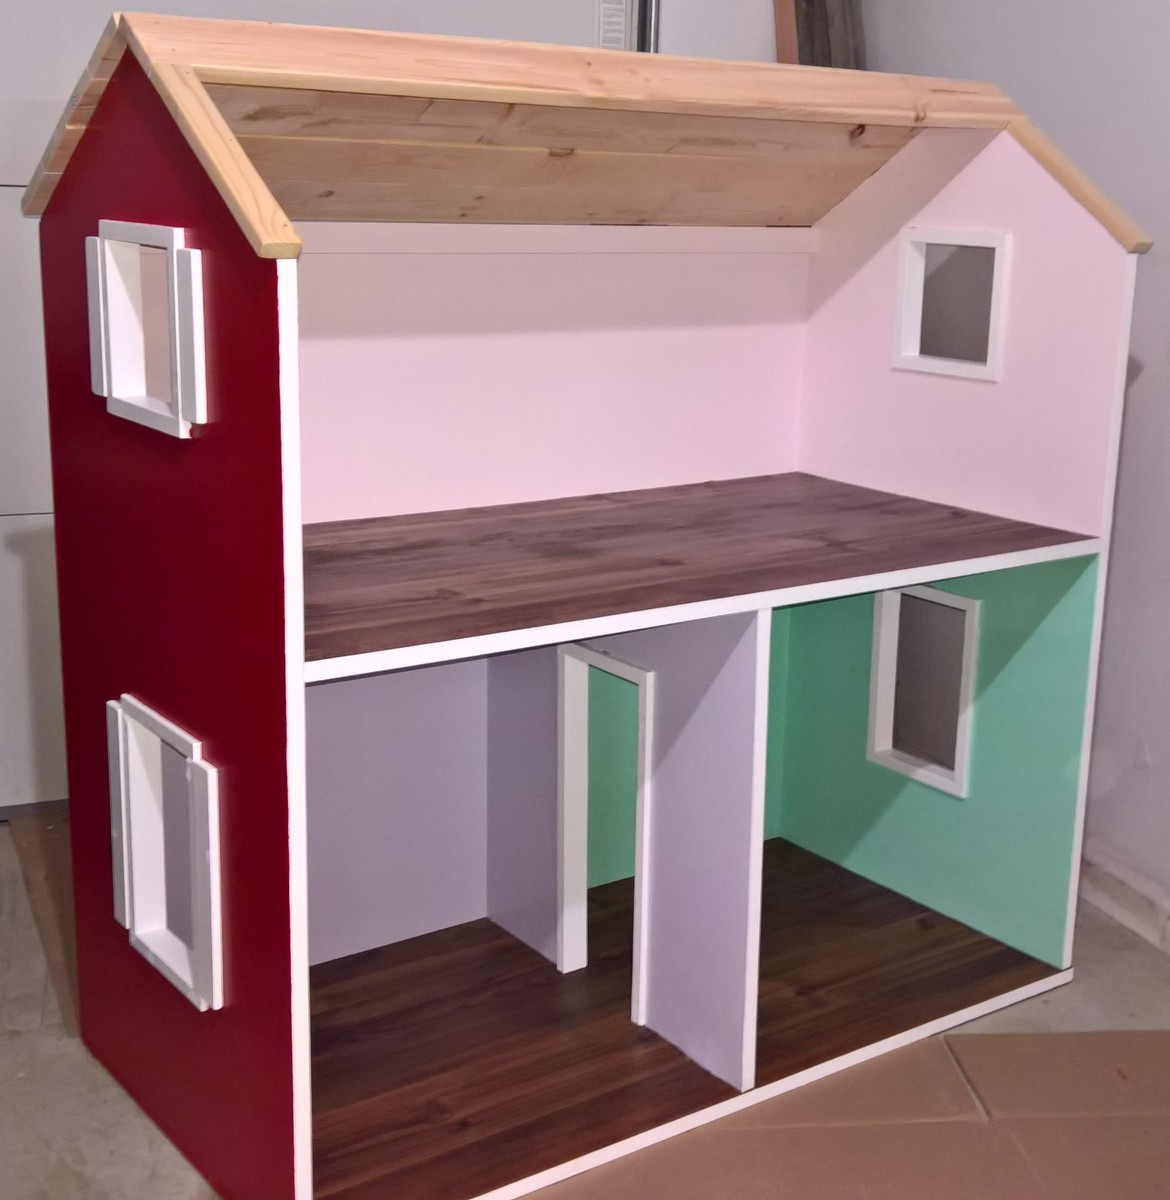 Ana white 2 story american girl dollhouse diy projects for Dollhouse building plans free